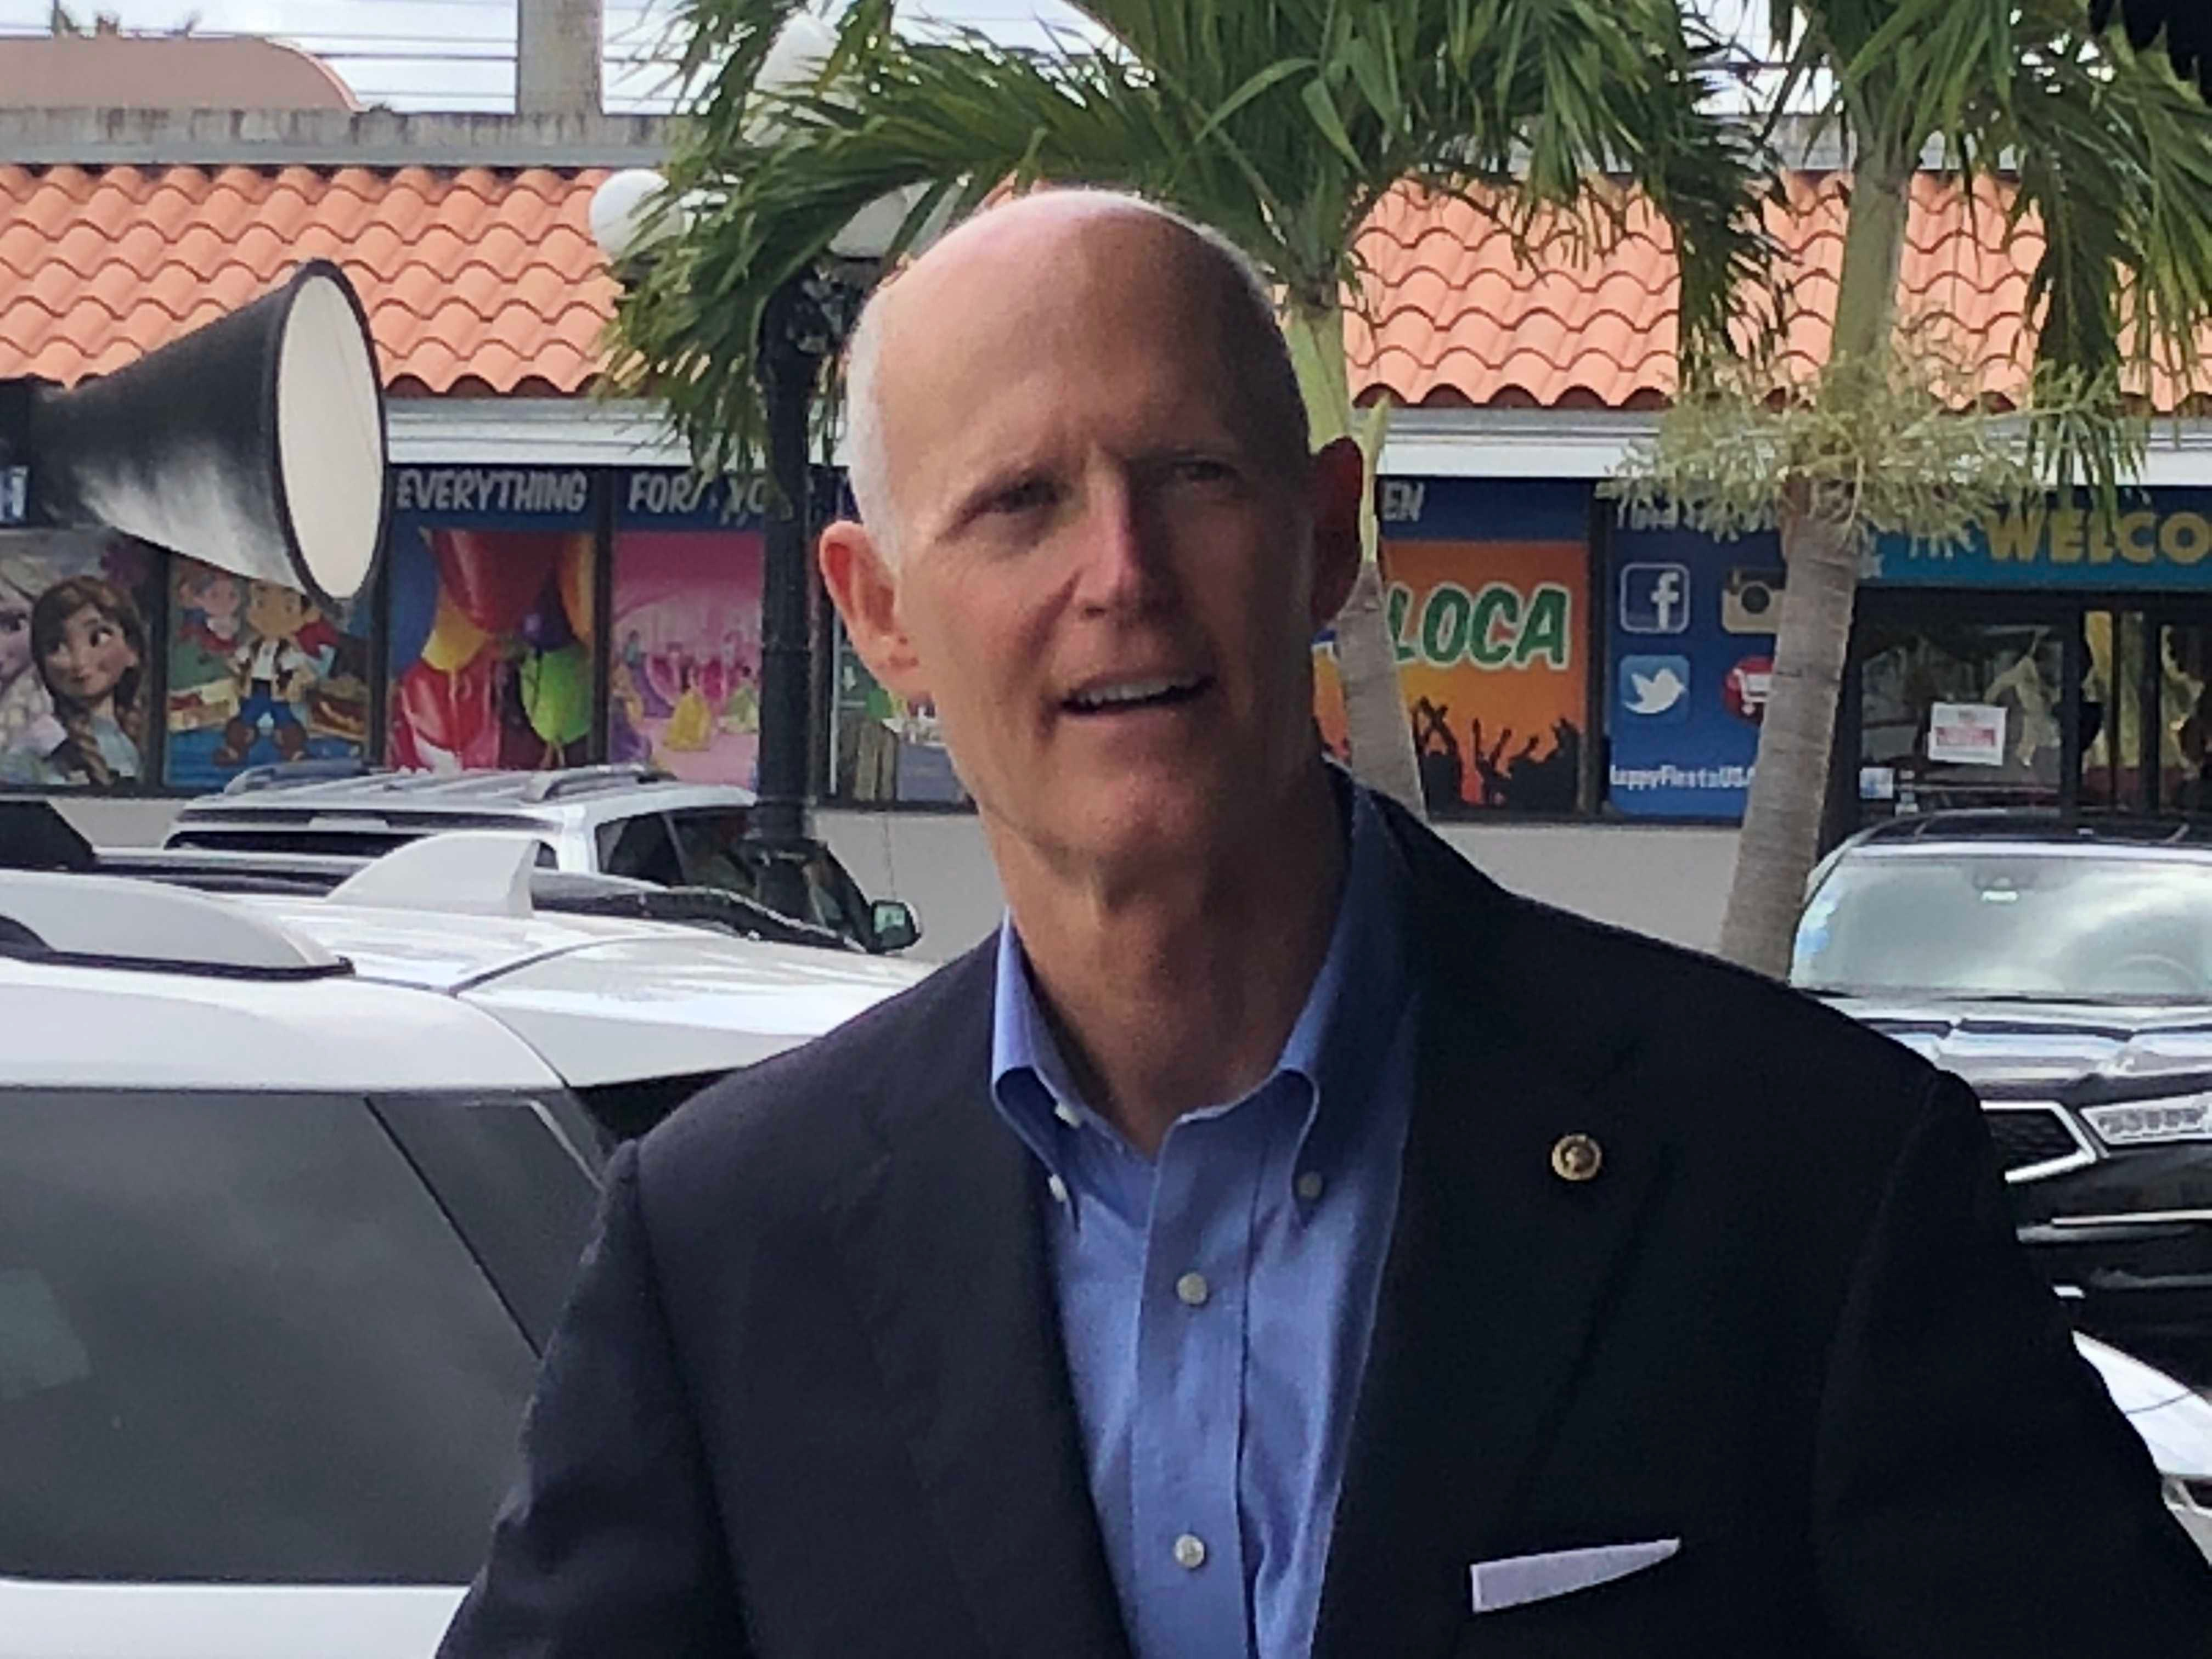 Scott wants state-based healthcare coverage, solutions